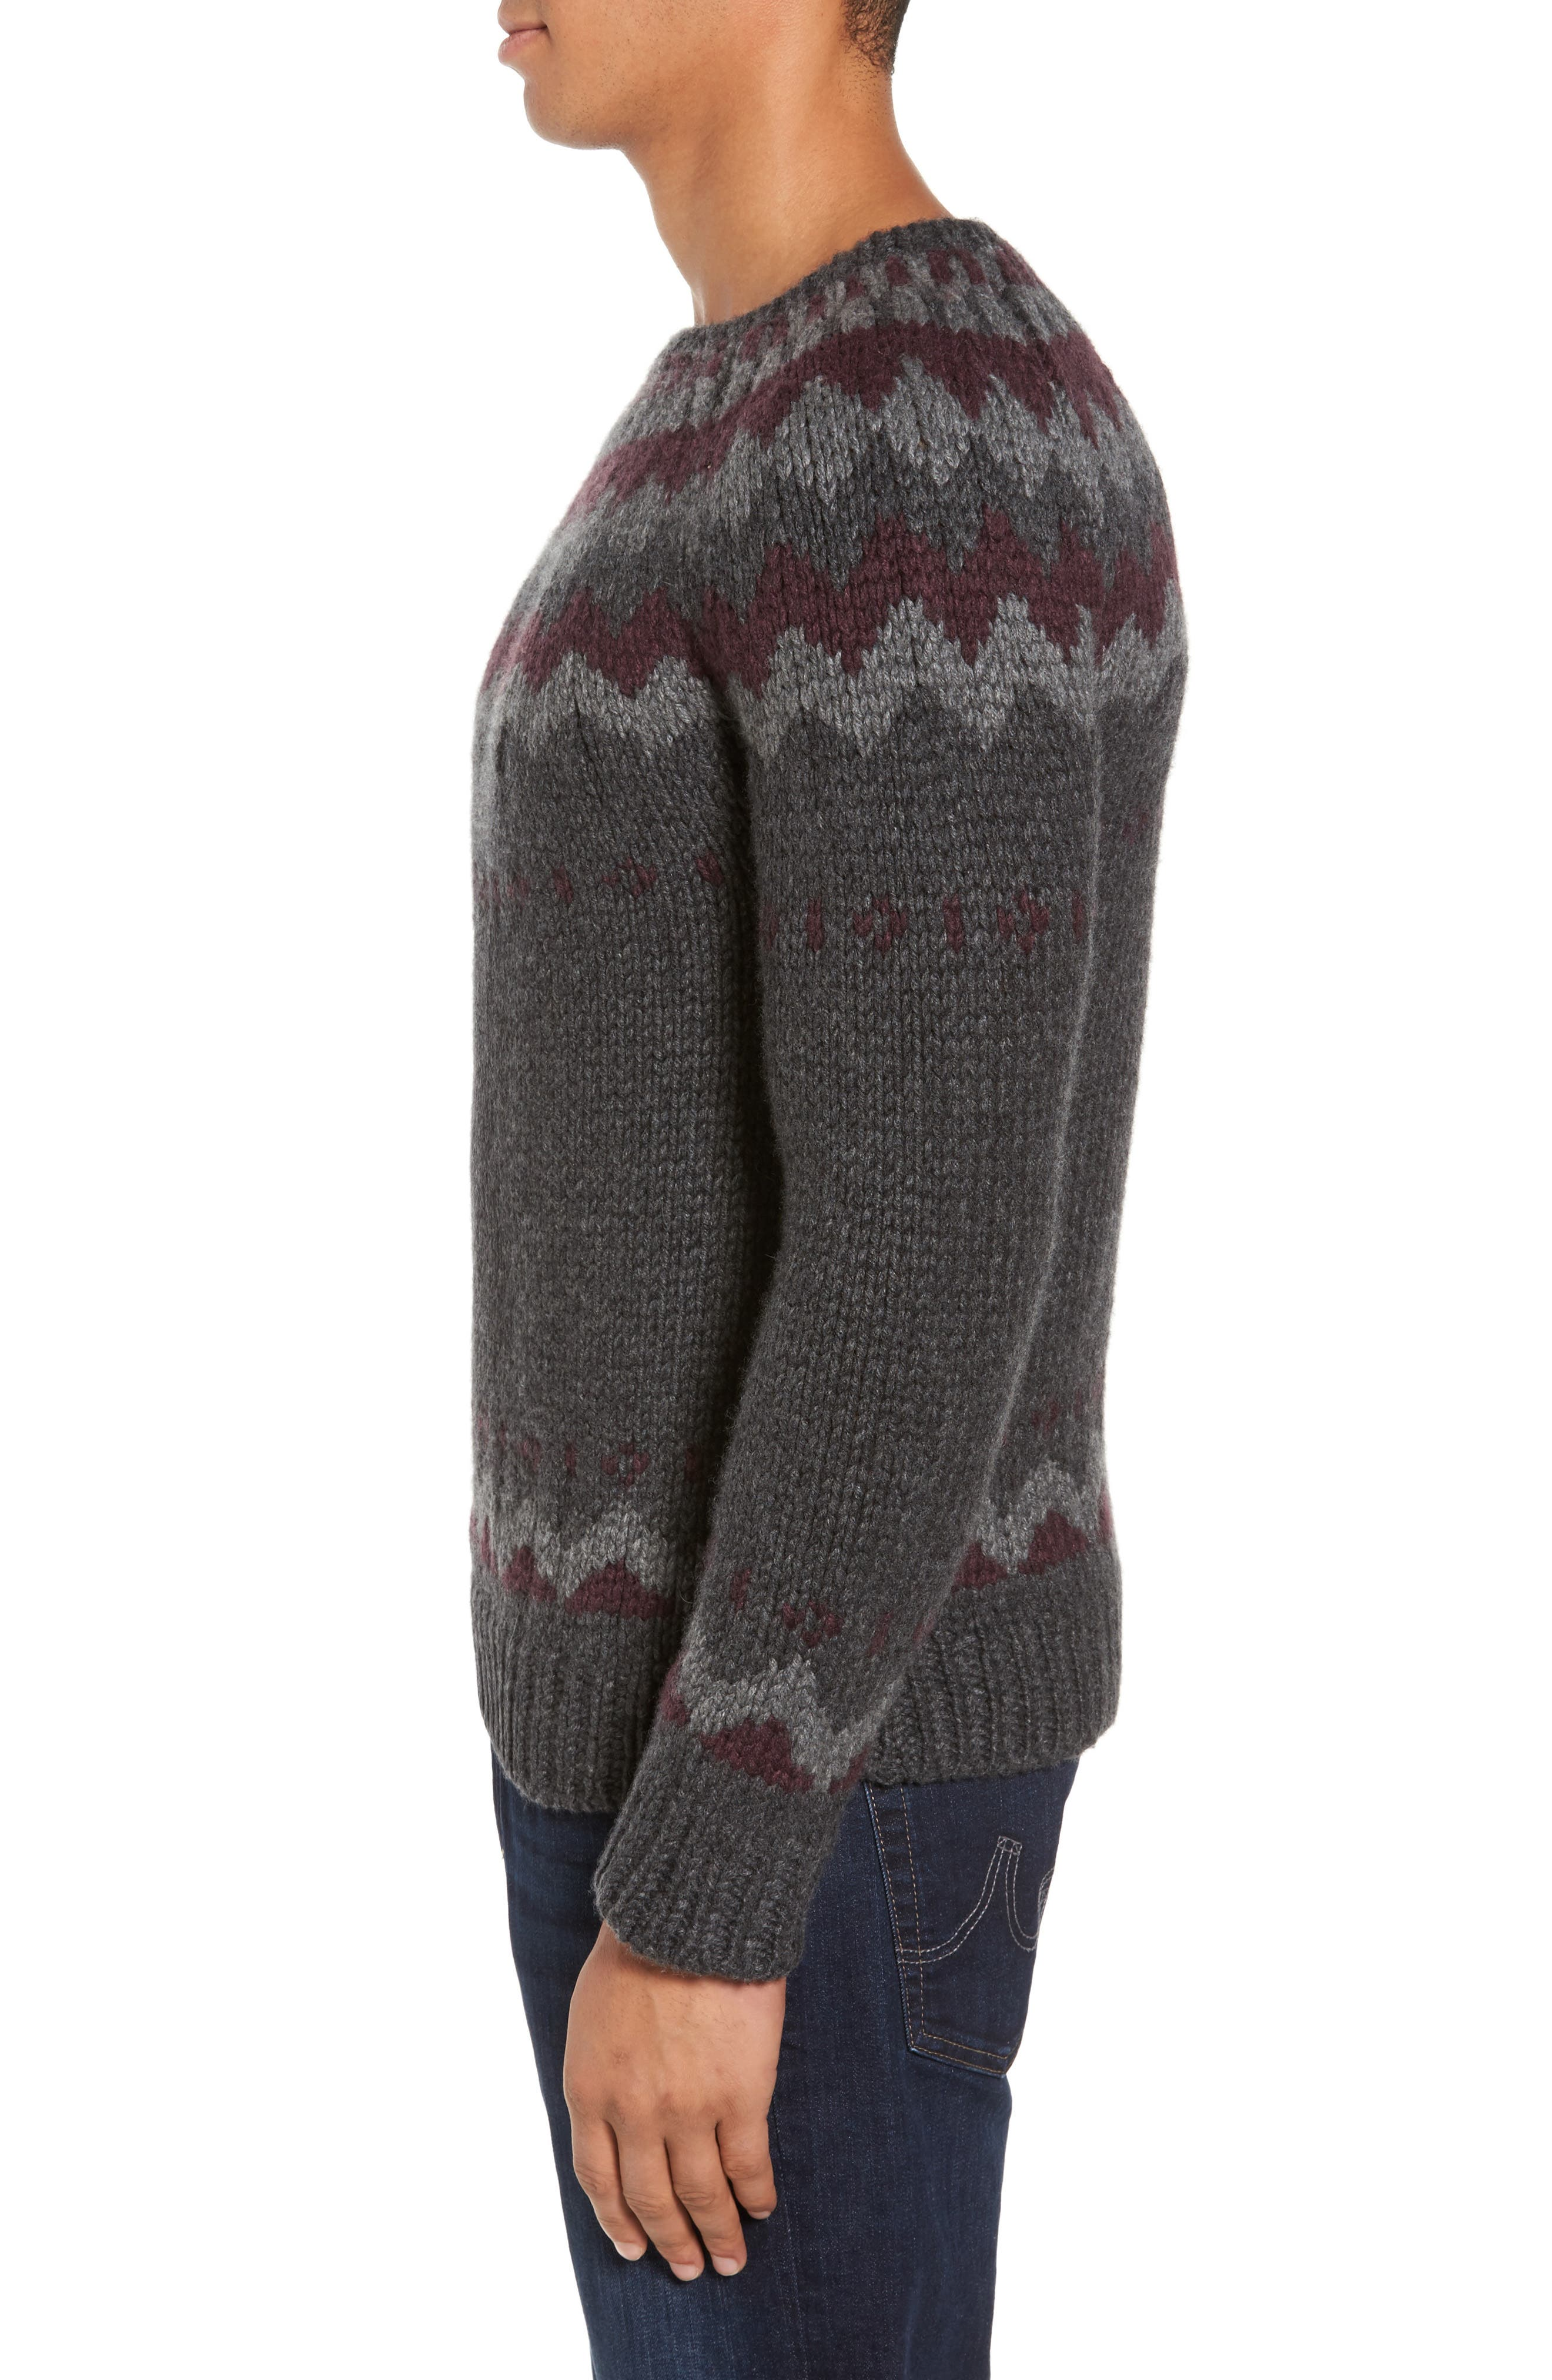 Intarsia Cashmere Sweater,                             Alternate thumbnail 3, color,                             Grey / Burgundy/ Light Grey